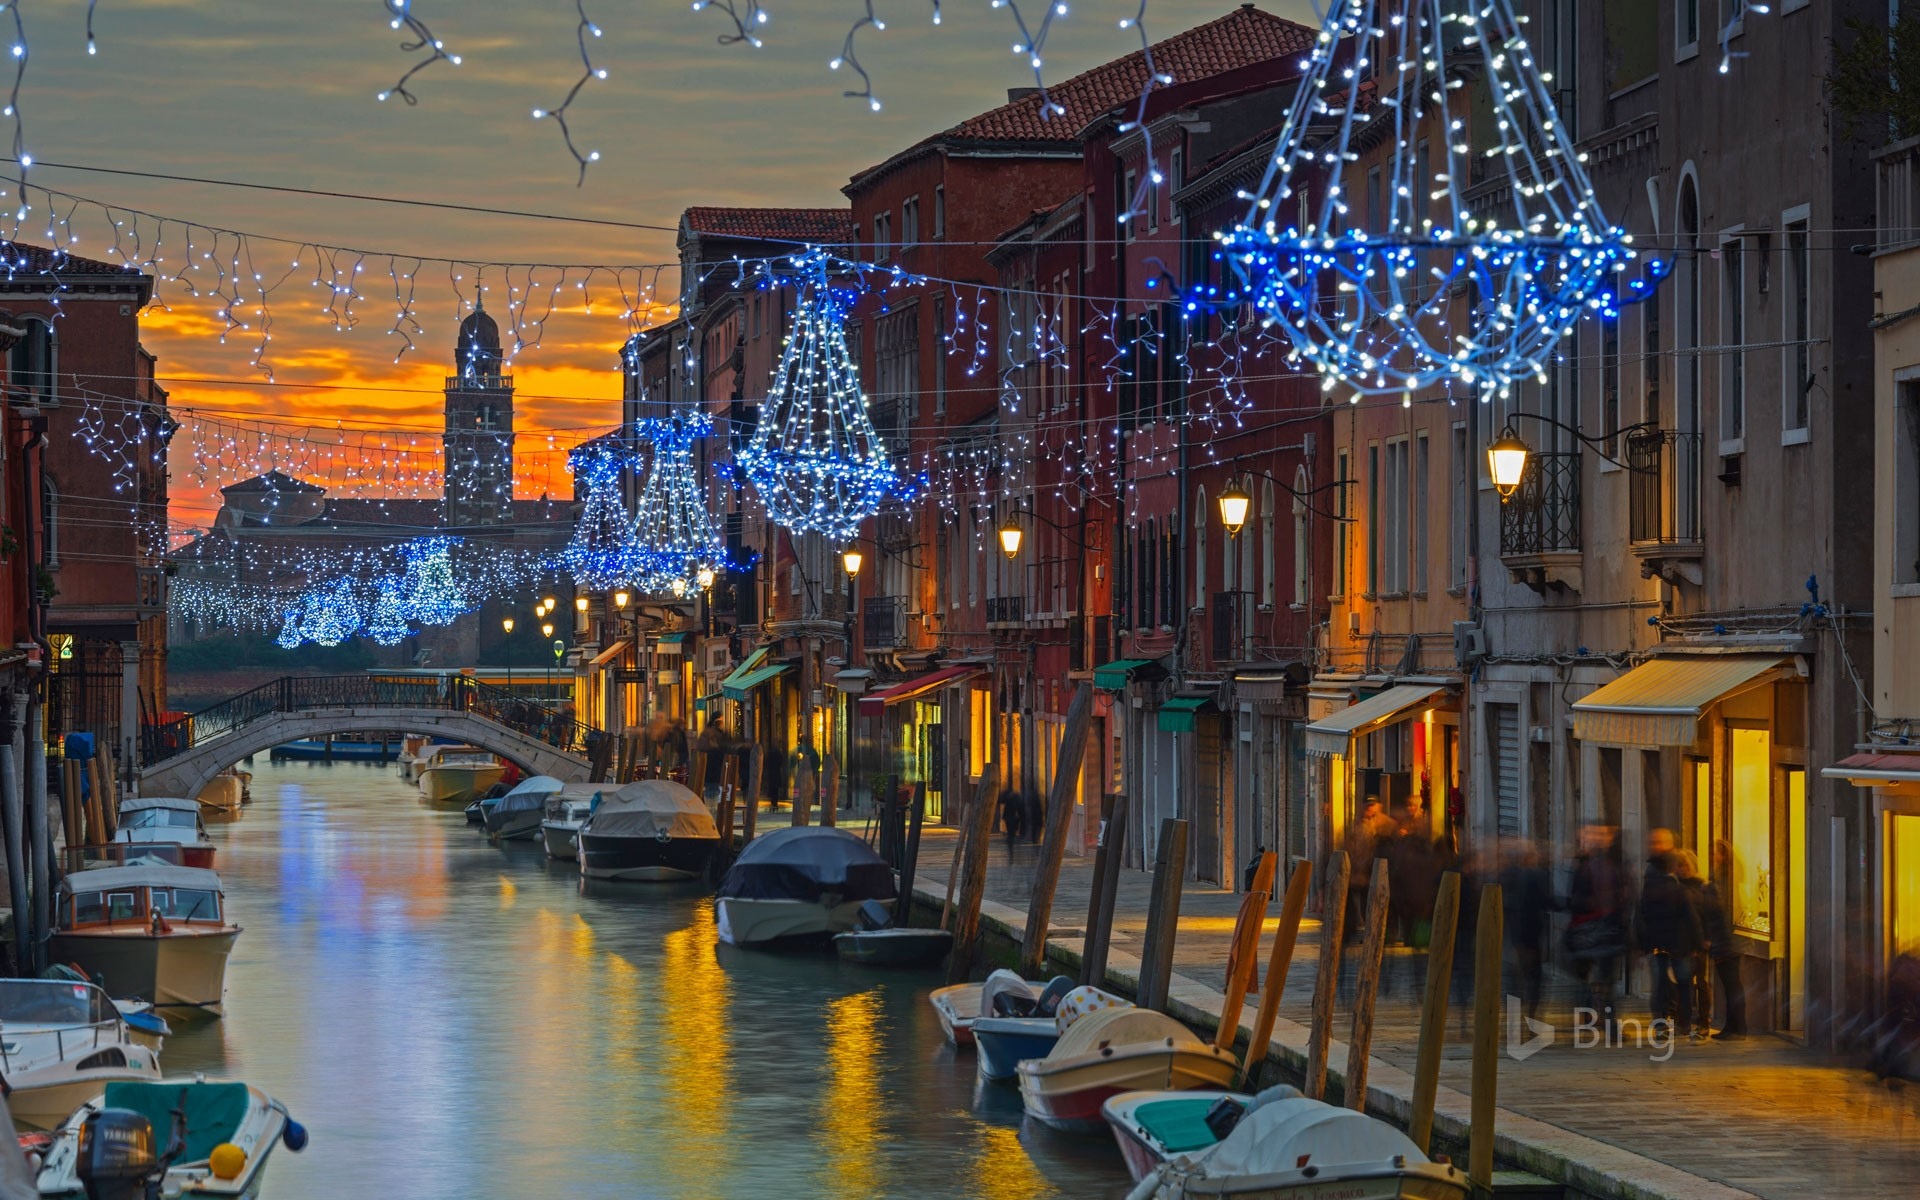 Holiday decorations on a canal in Murano, Italy